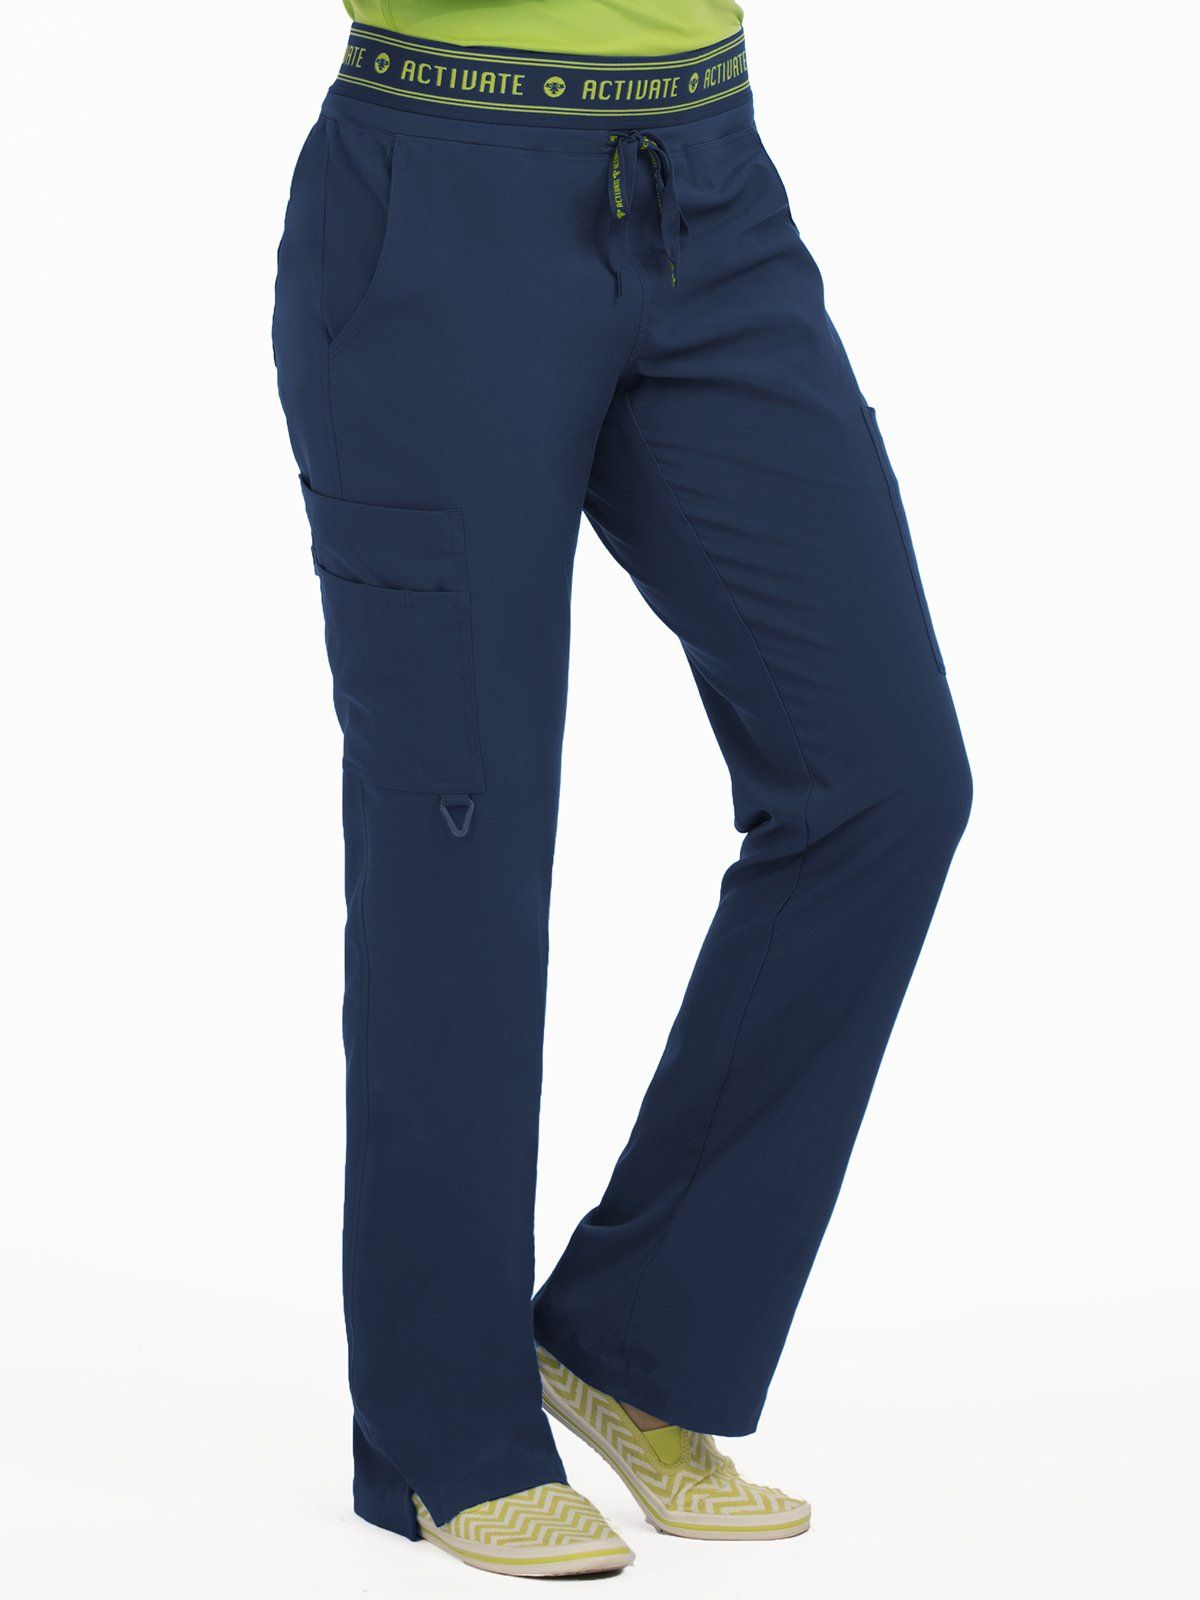 1fe4a632ddb Med Couture Activate Yoga Flow Pant | Scrubs | Med couture scrubs ...